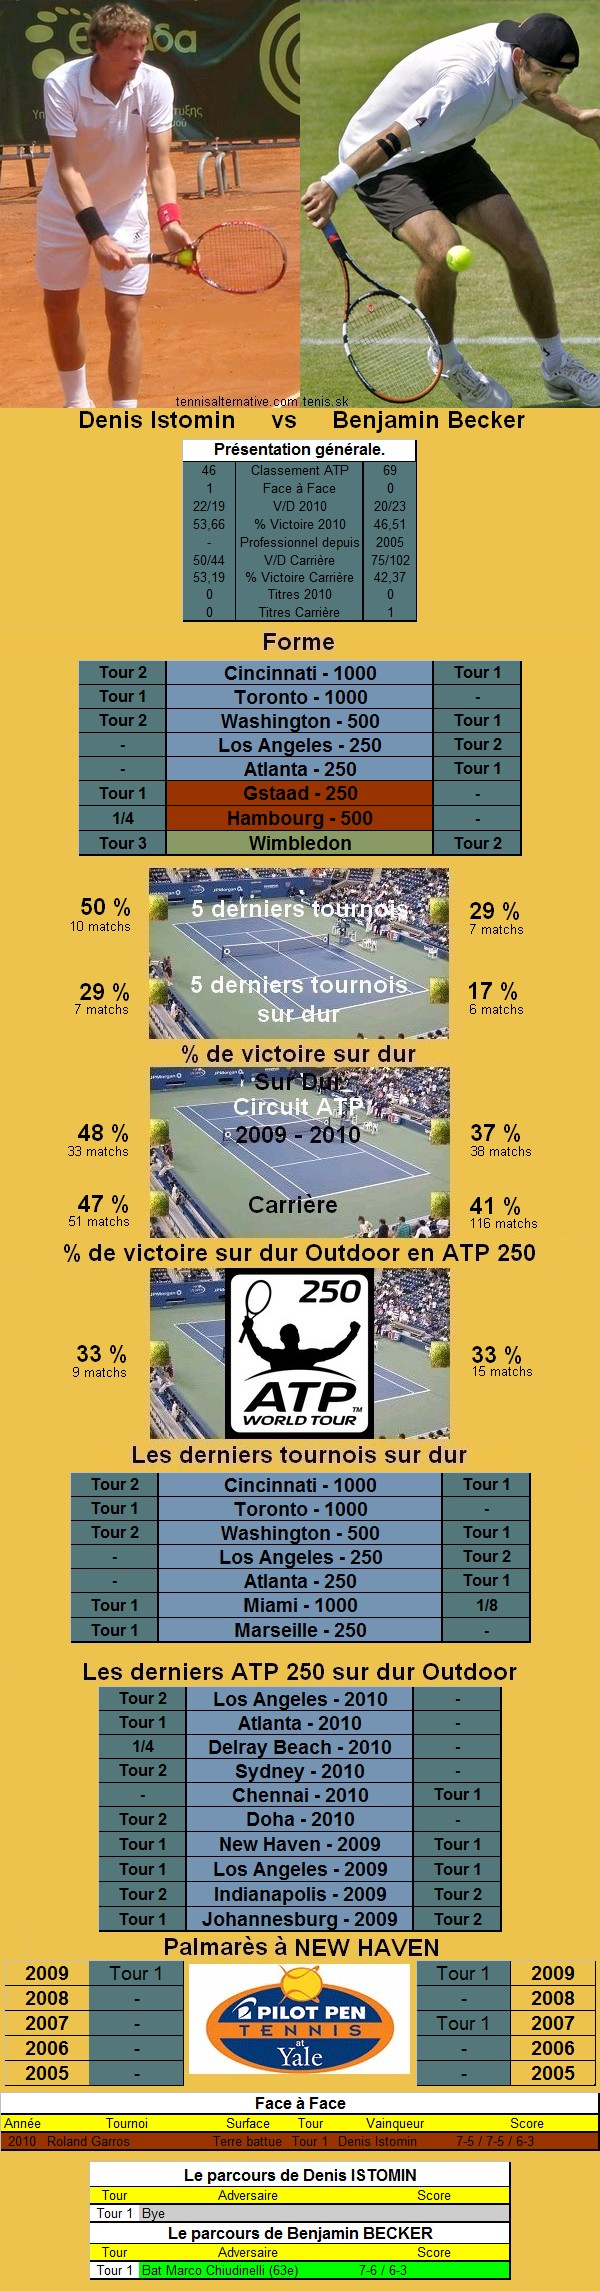 Statistiques tennis de Istomin contre Becker à New Haven